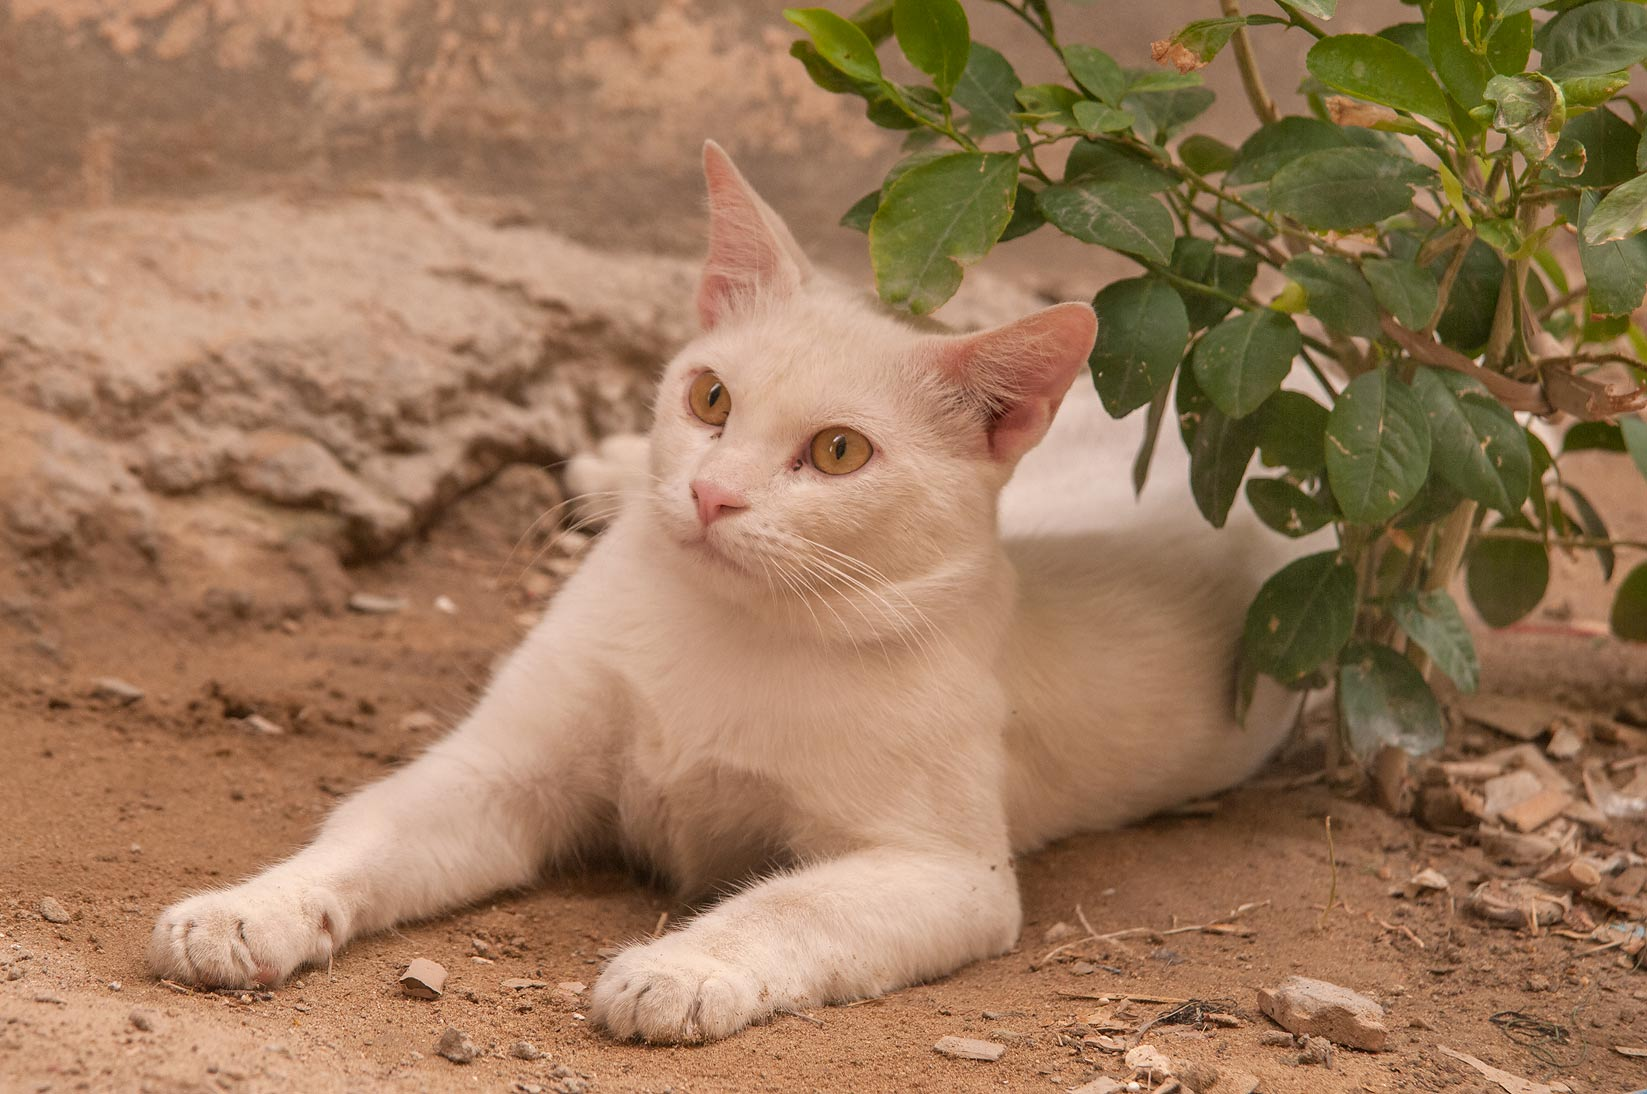 White cat resting in sikka parallel to Abdullah Bin Thani St., Musheirib area. Doha, Qatar